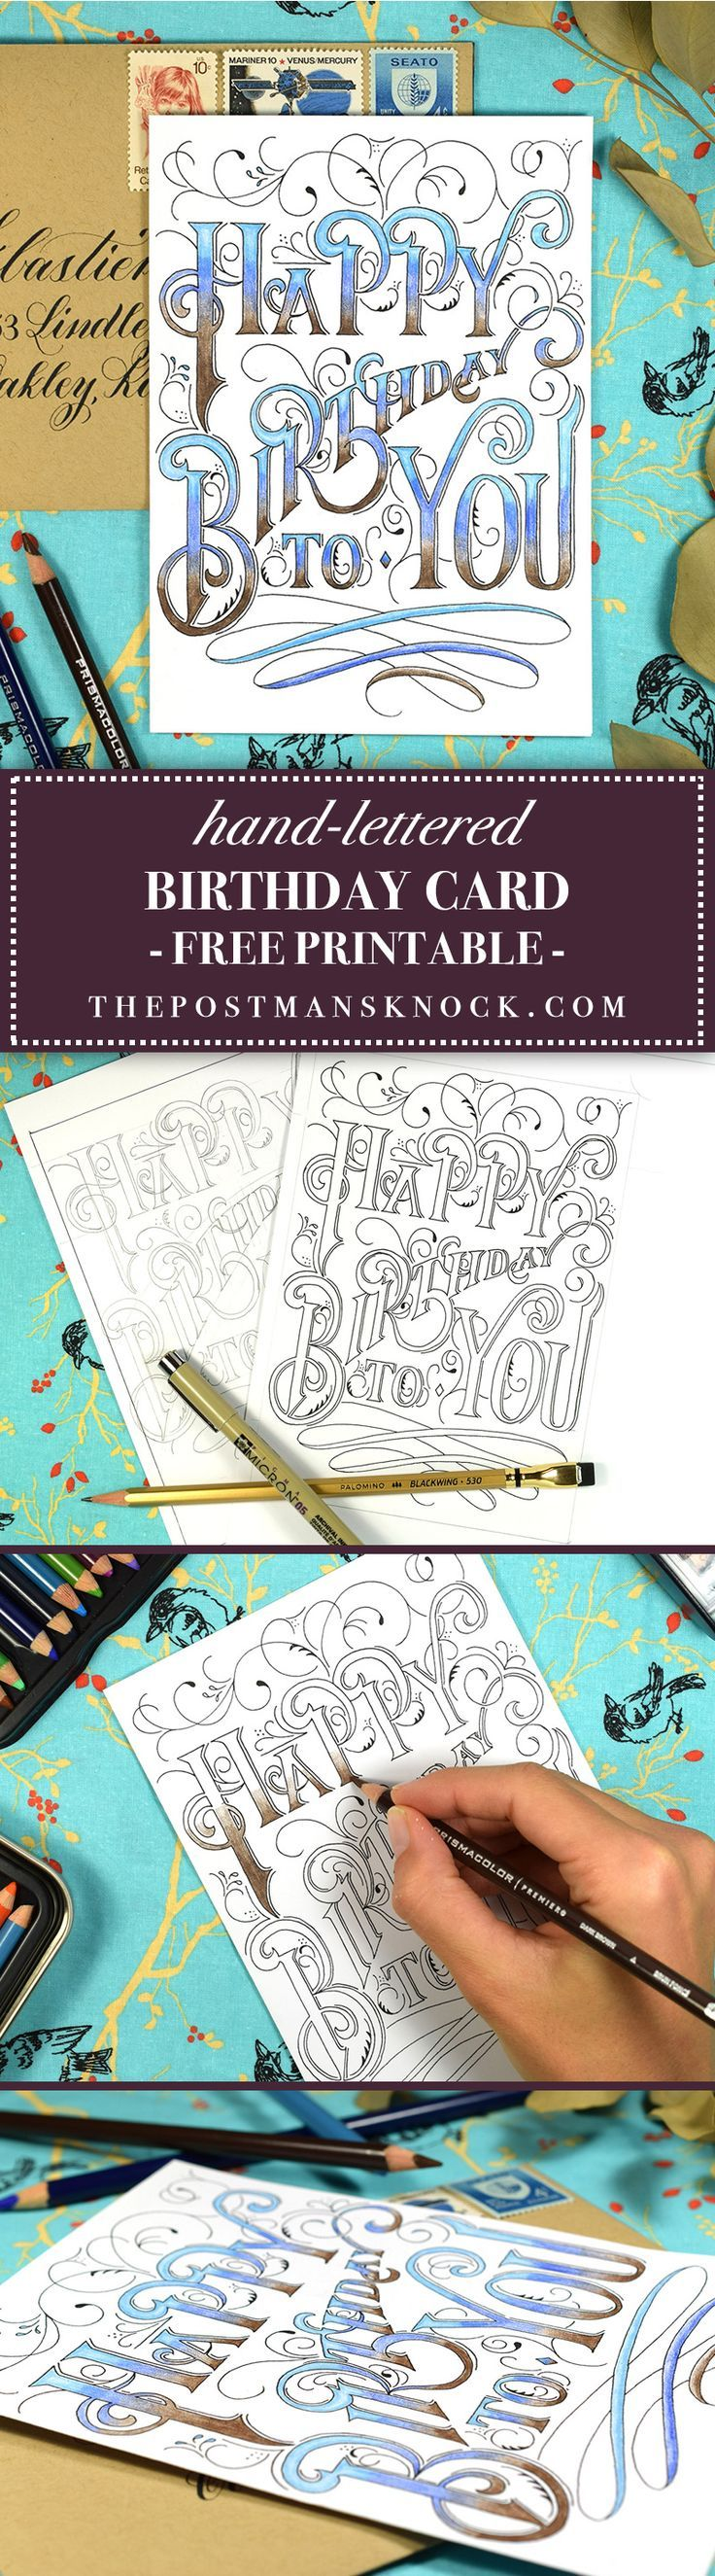 Handlettered printable birthday card card ideas birthday diy